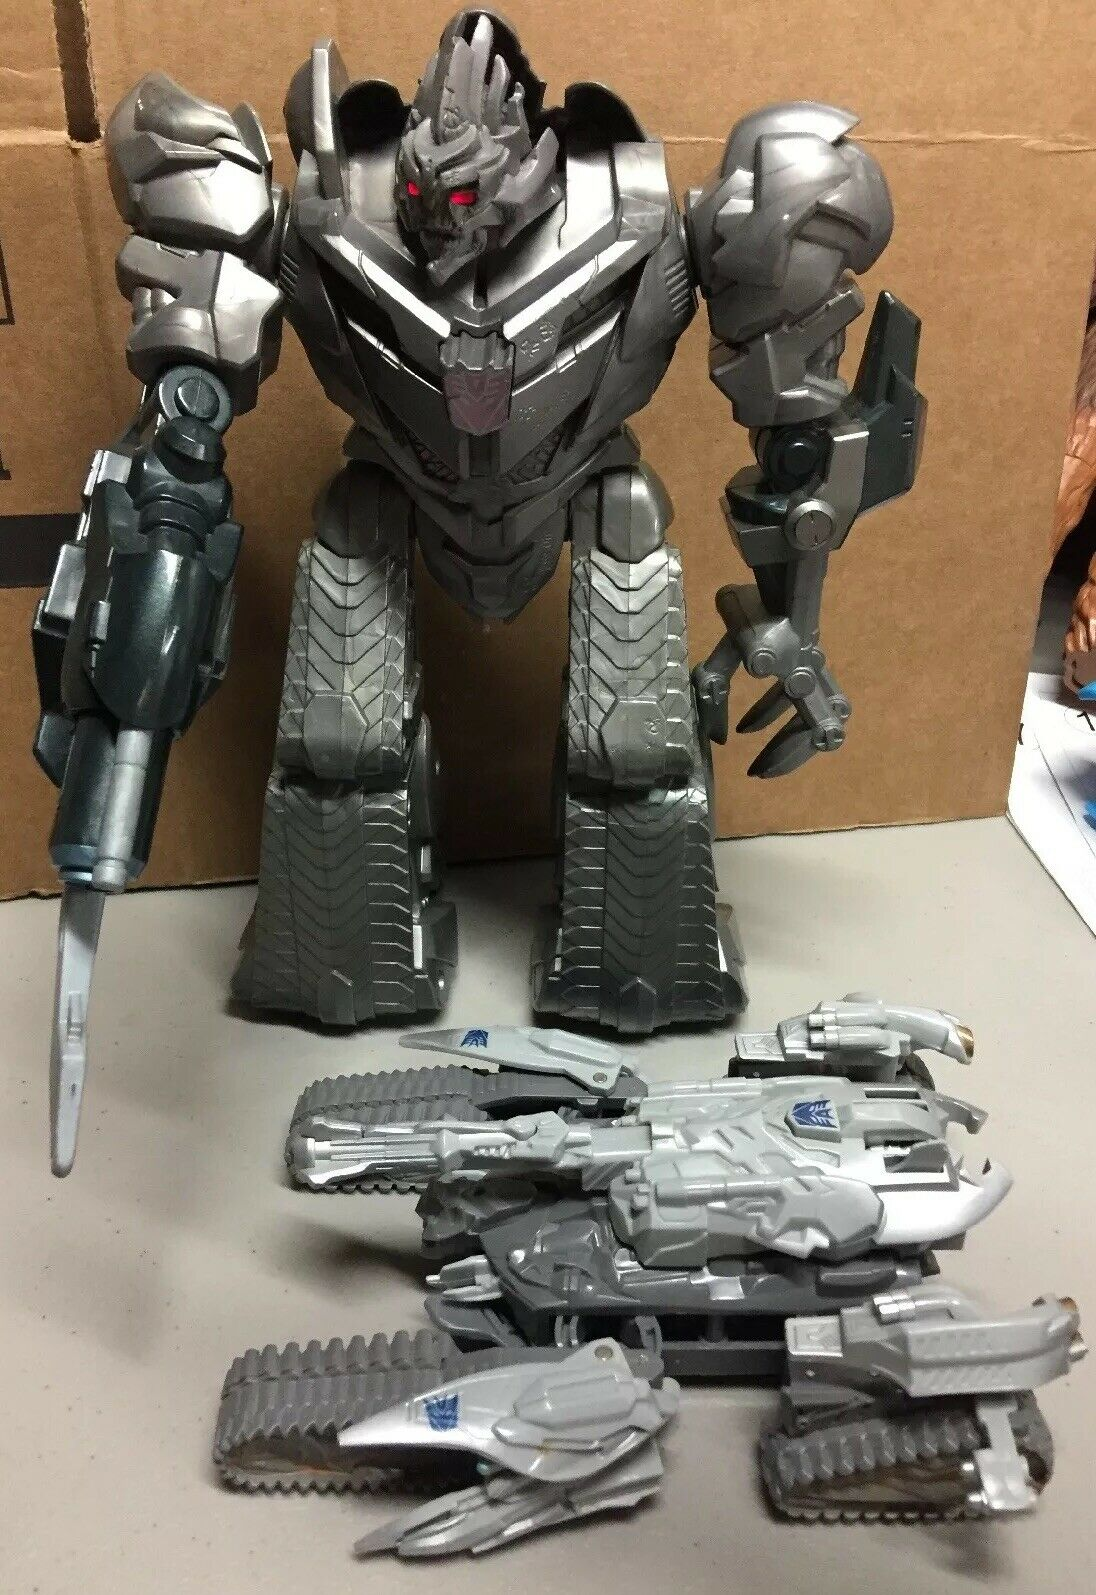 Transformers redF Megatron Electronic Lot Of 2 Talking W Lights 10.5 +Tank WORK